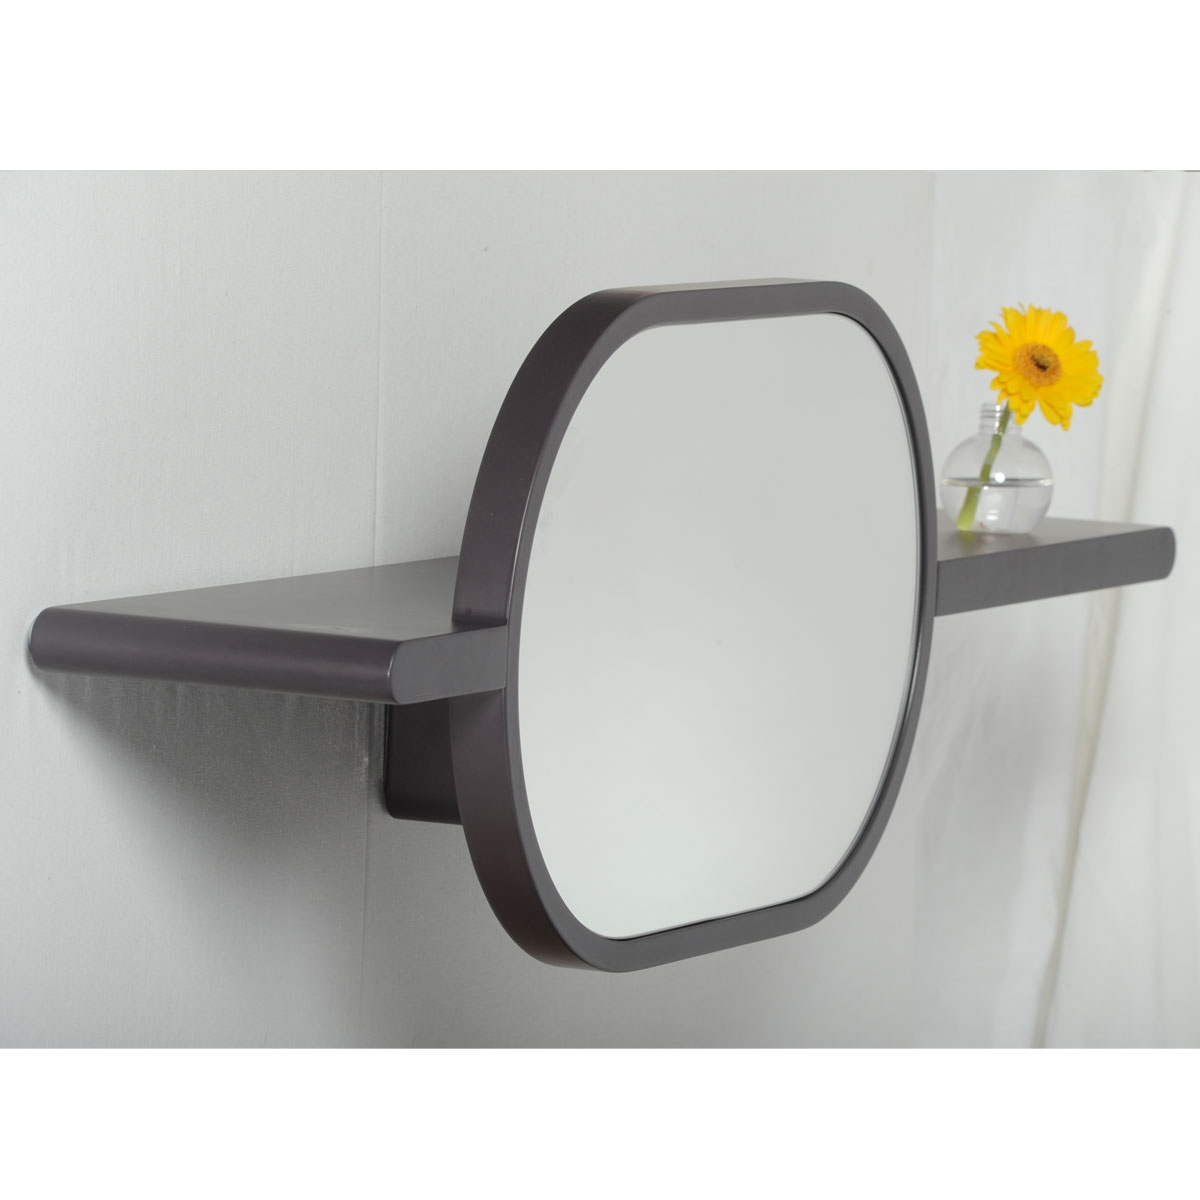 Tablette miroir design mirette horizontal oxyo for Miroir horizontal